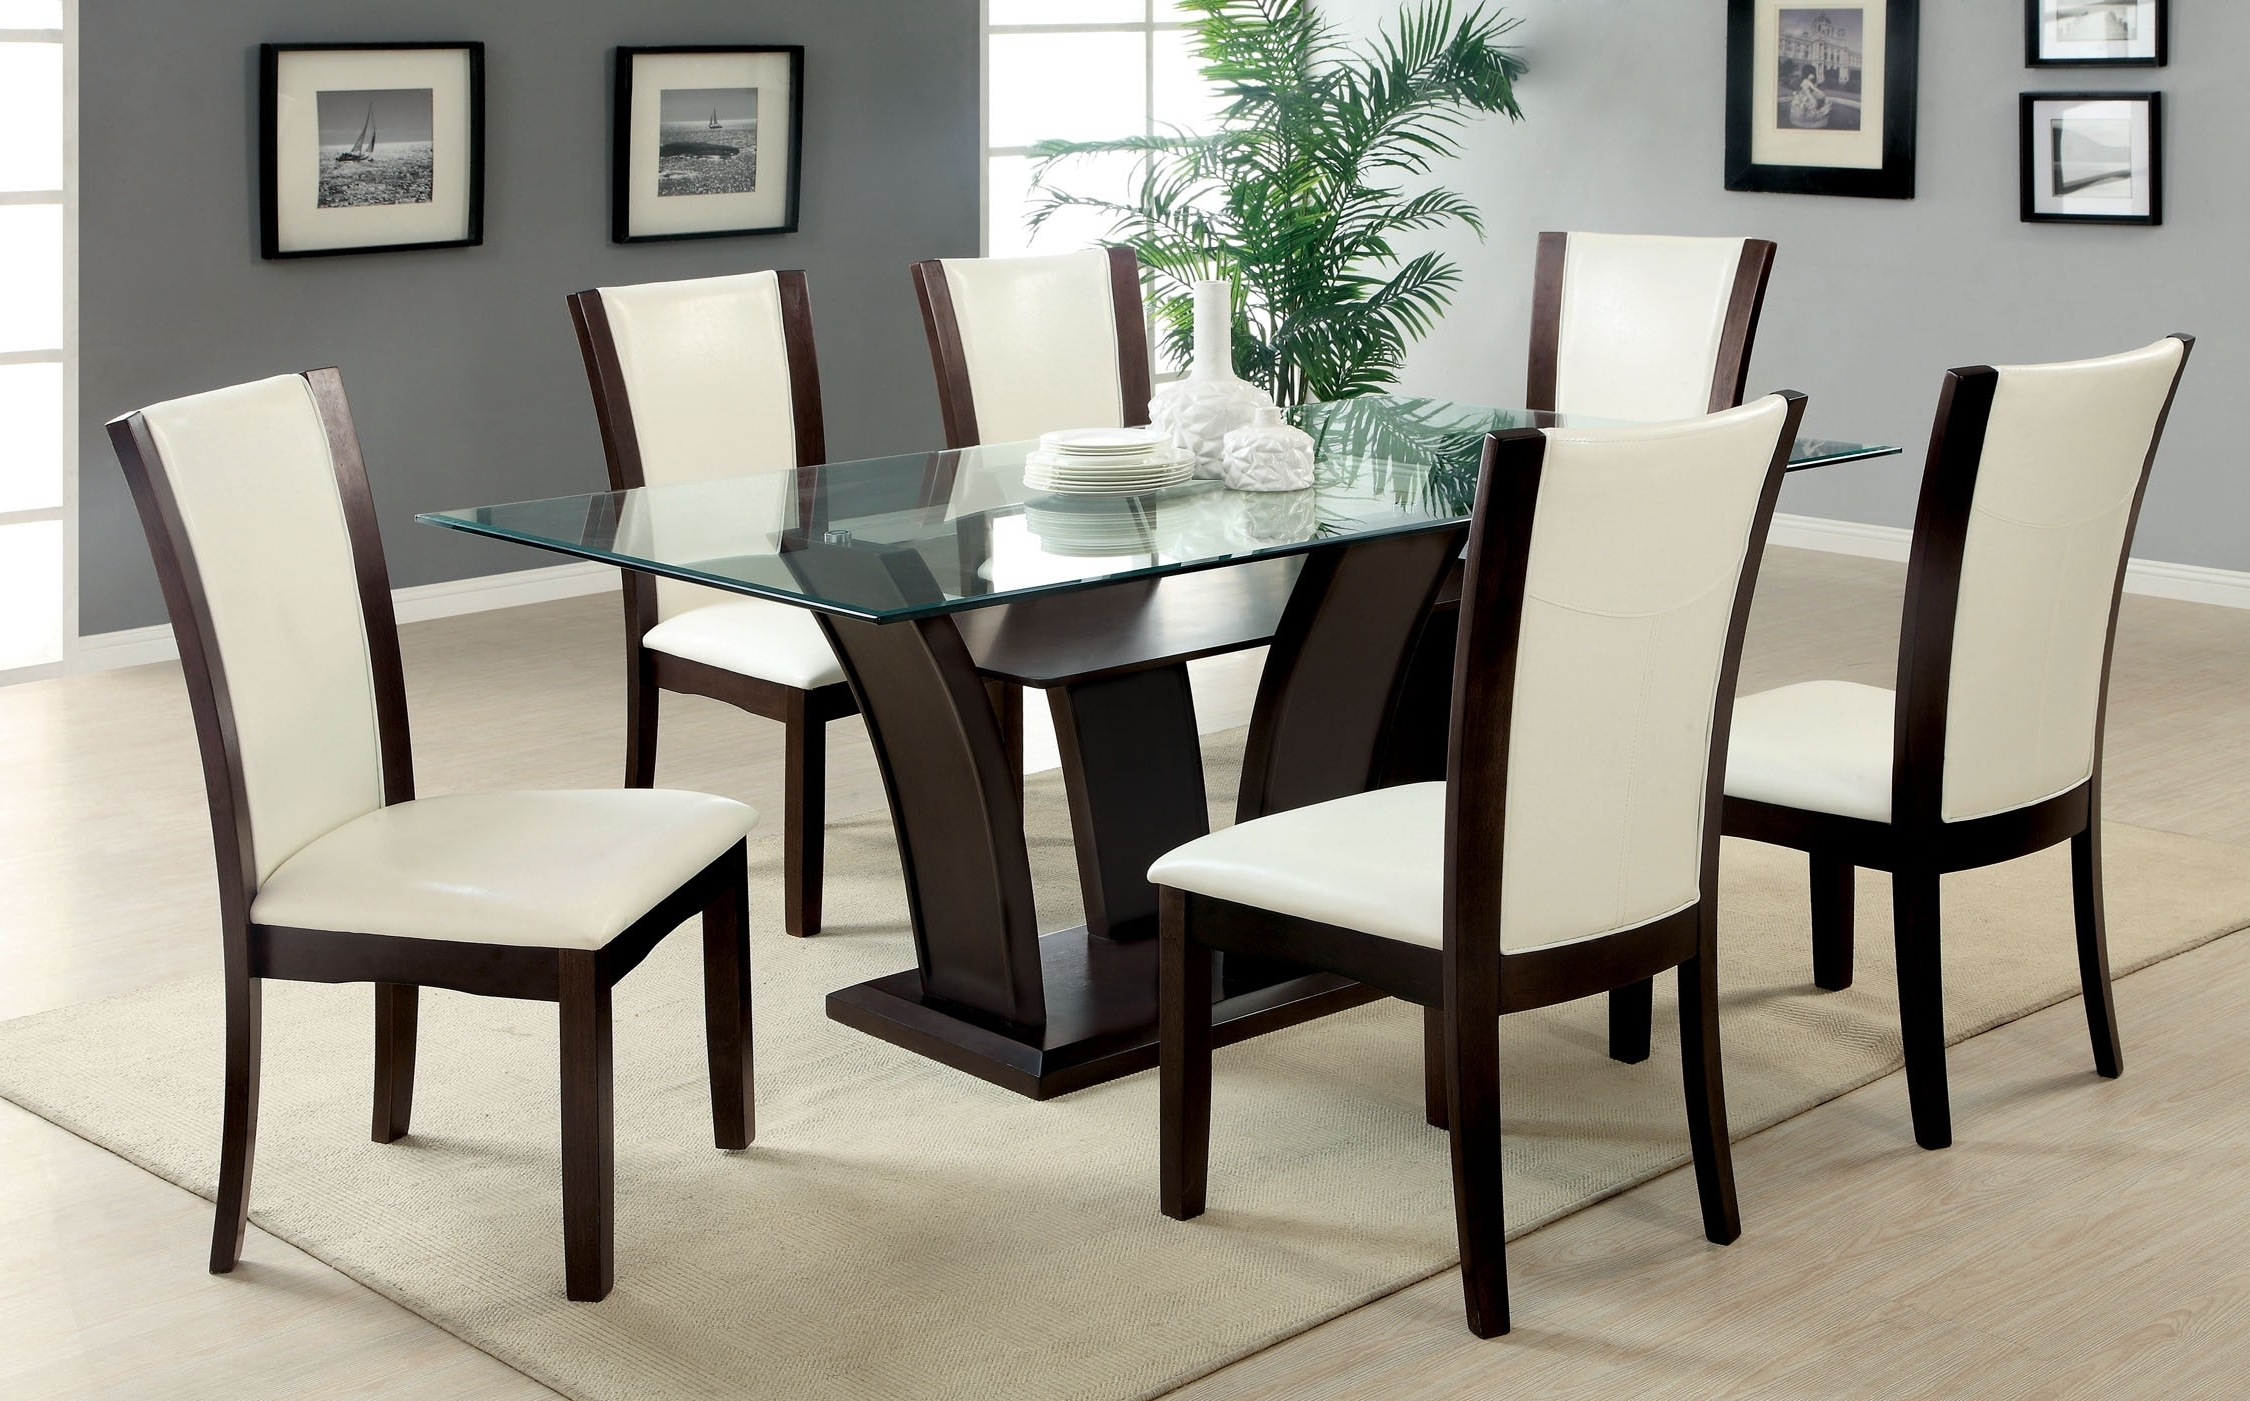 Latest Dining Room Glass Tables Sets With Regard To 6 Seater Glass Dining Table Sets • Table Setting Ideas (View 16 of 25)